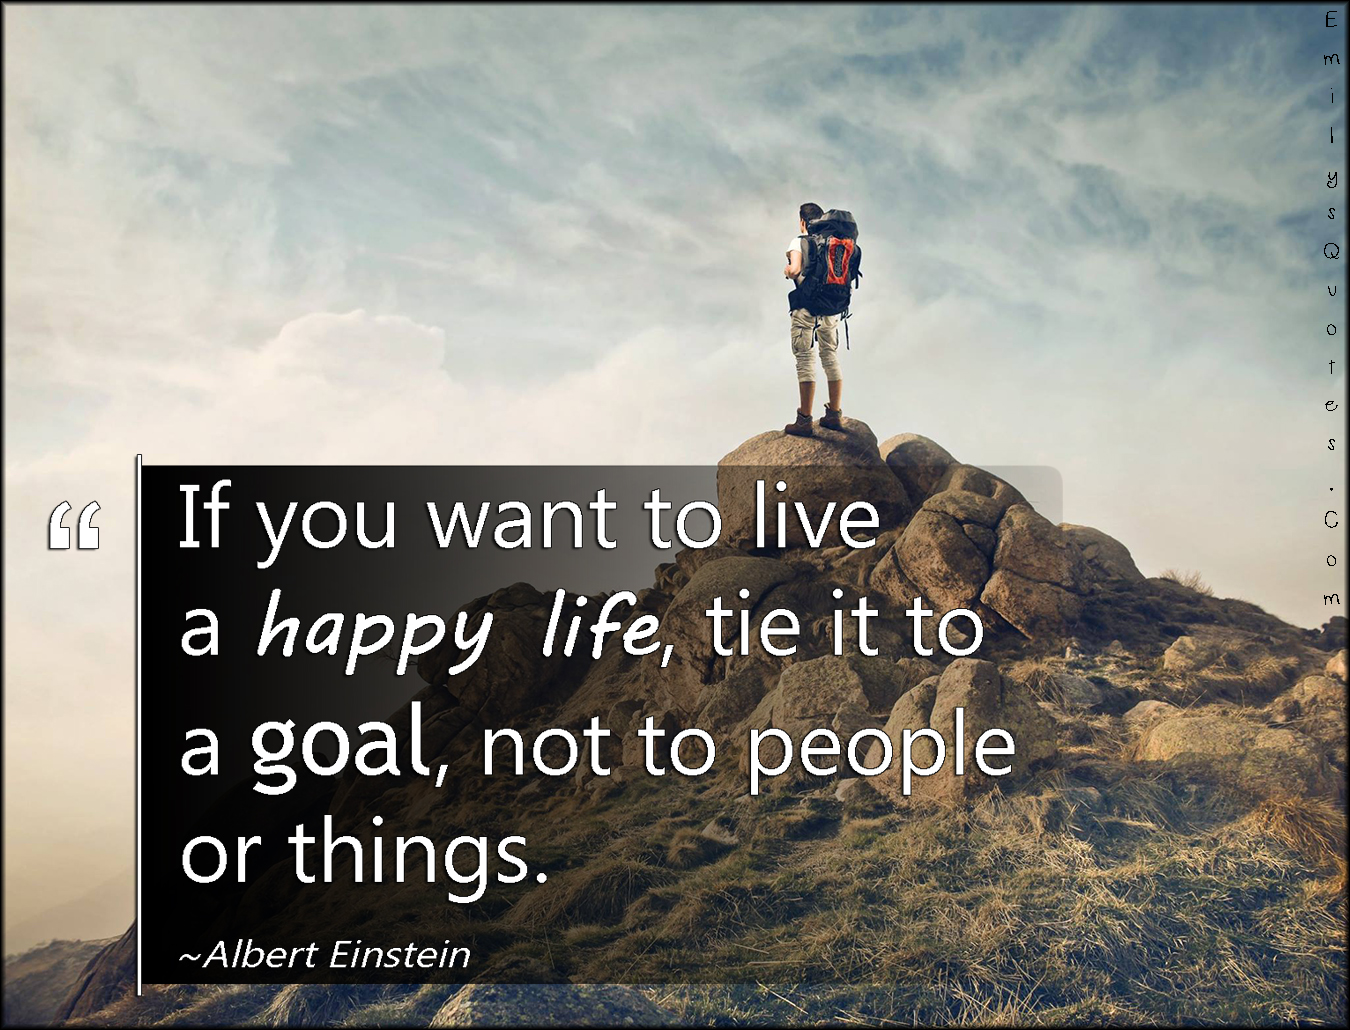 Inspirational Quotes On Happiness And Life If You Want To Live A Happy Life Tie It To A Goal Not To People